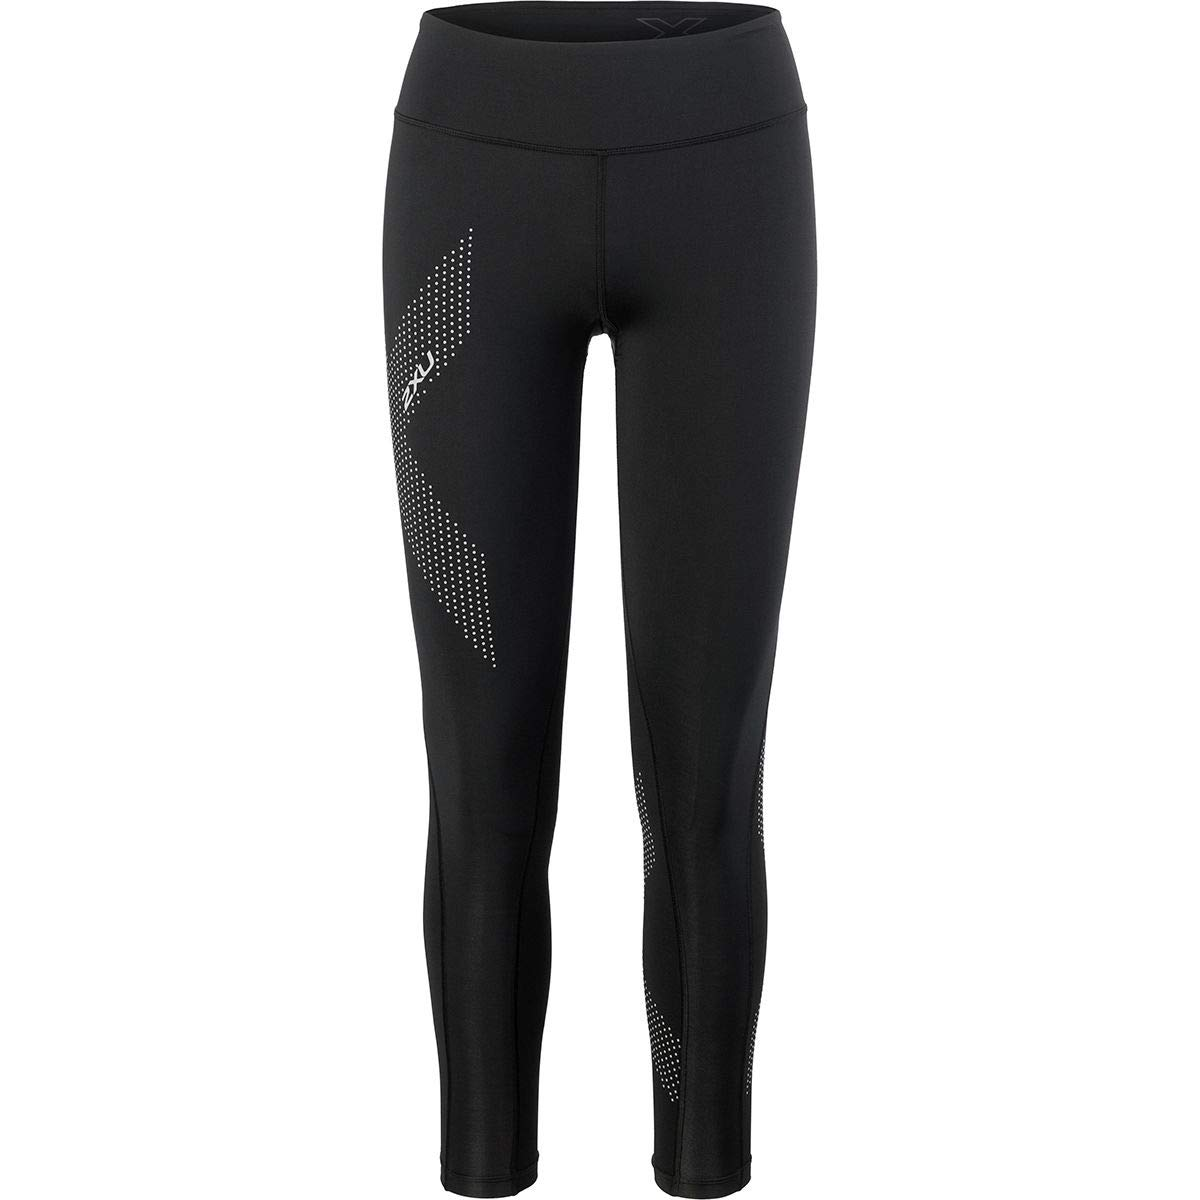 2XU Mid-Rise Compression Tights - Women's Black/Dotted Reflective Logo, XS by 2XU